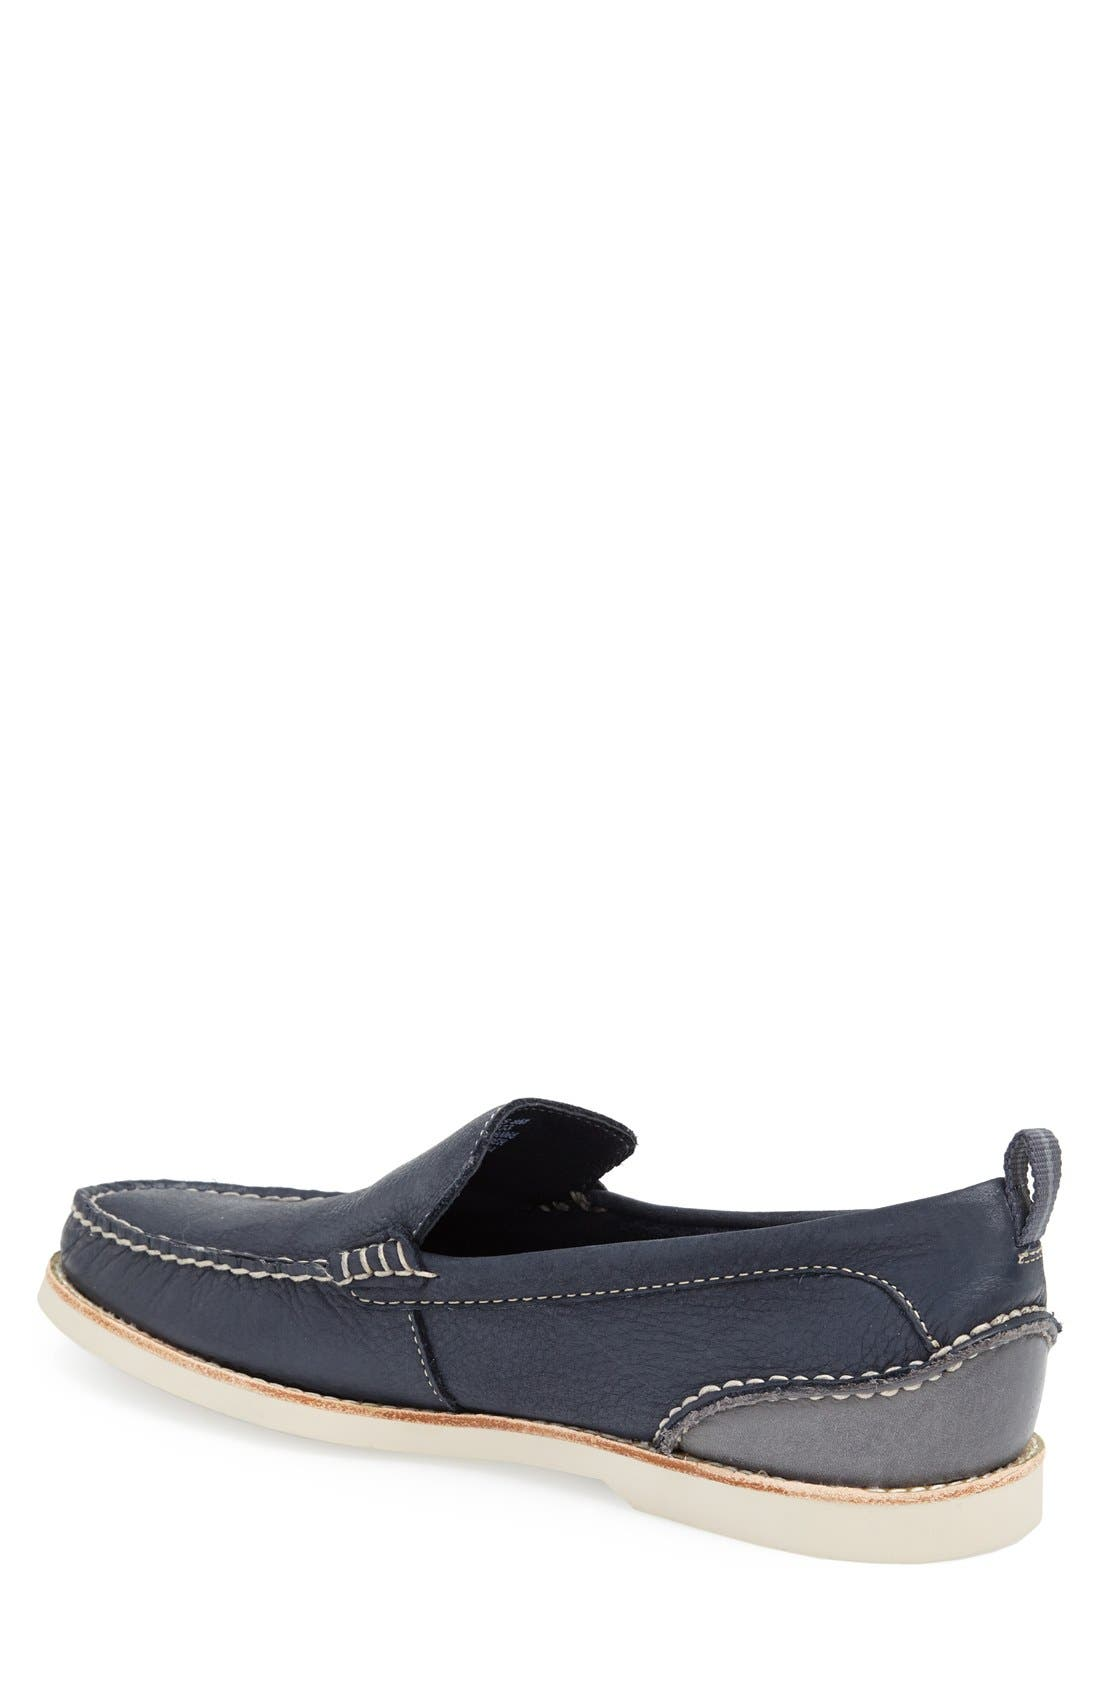 Alternate Image 2  - Sperry Top-Sider® 'Seaside' Loafer